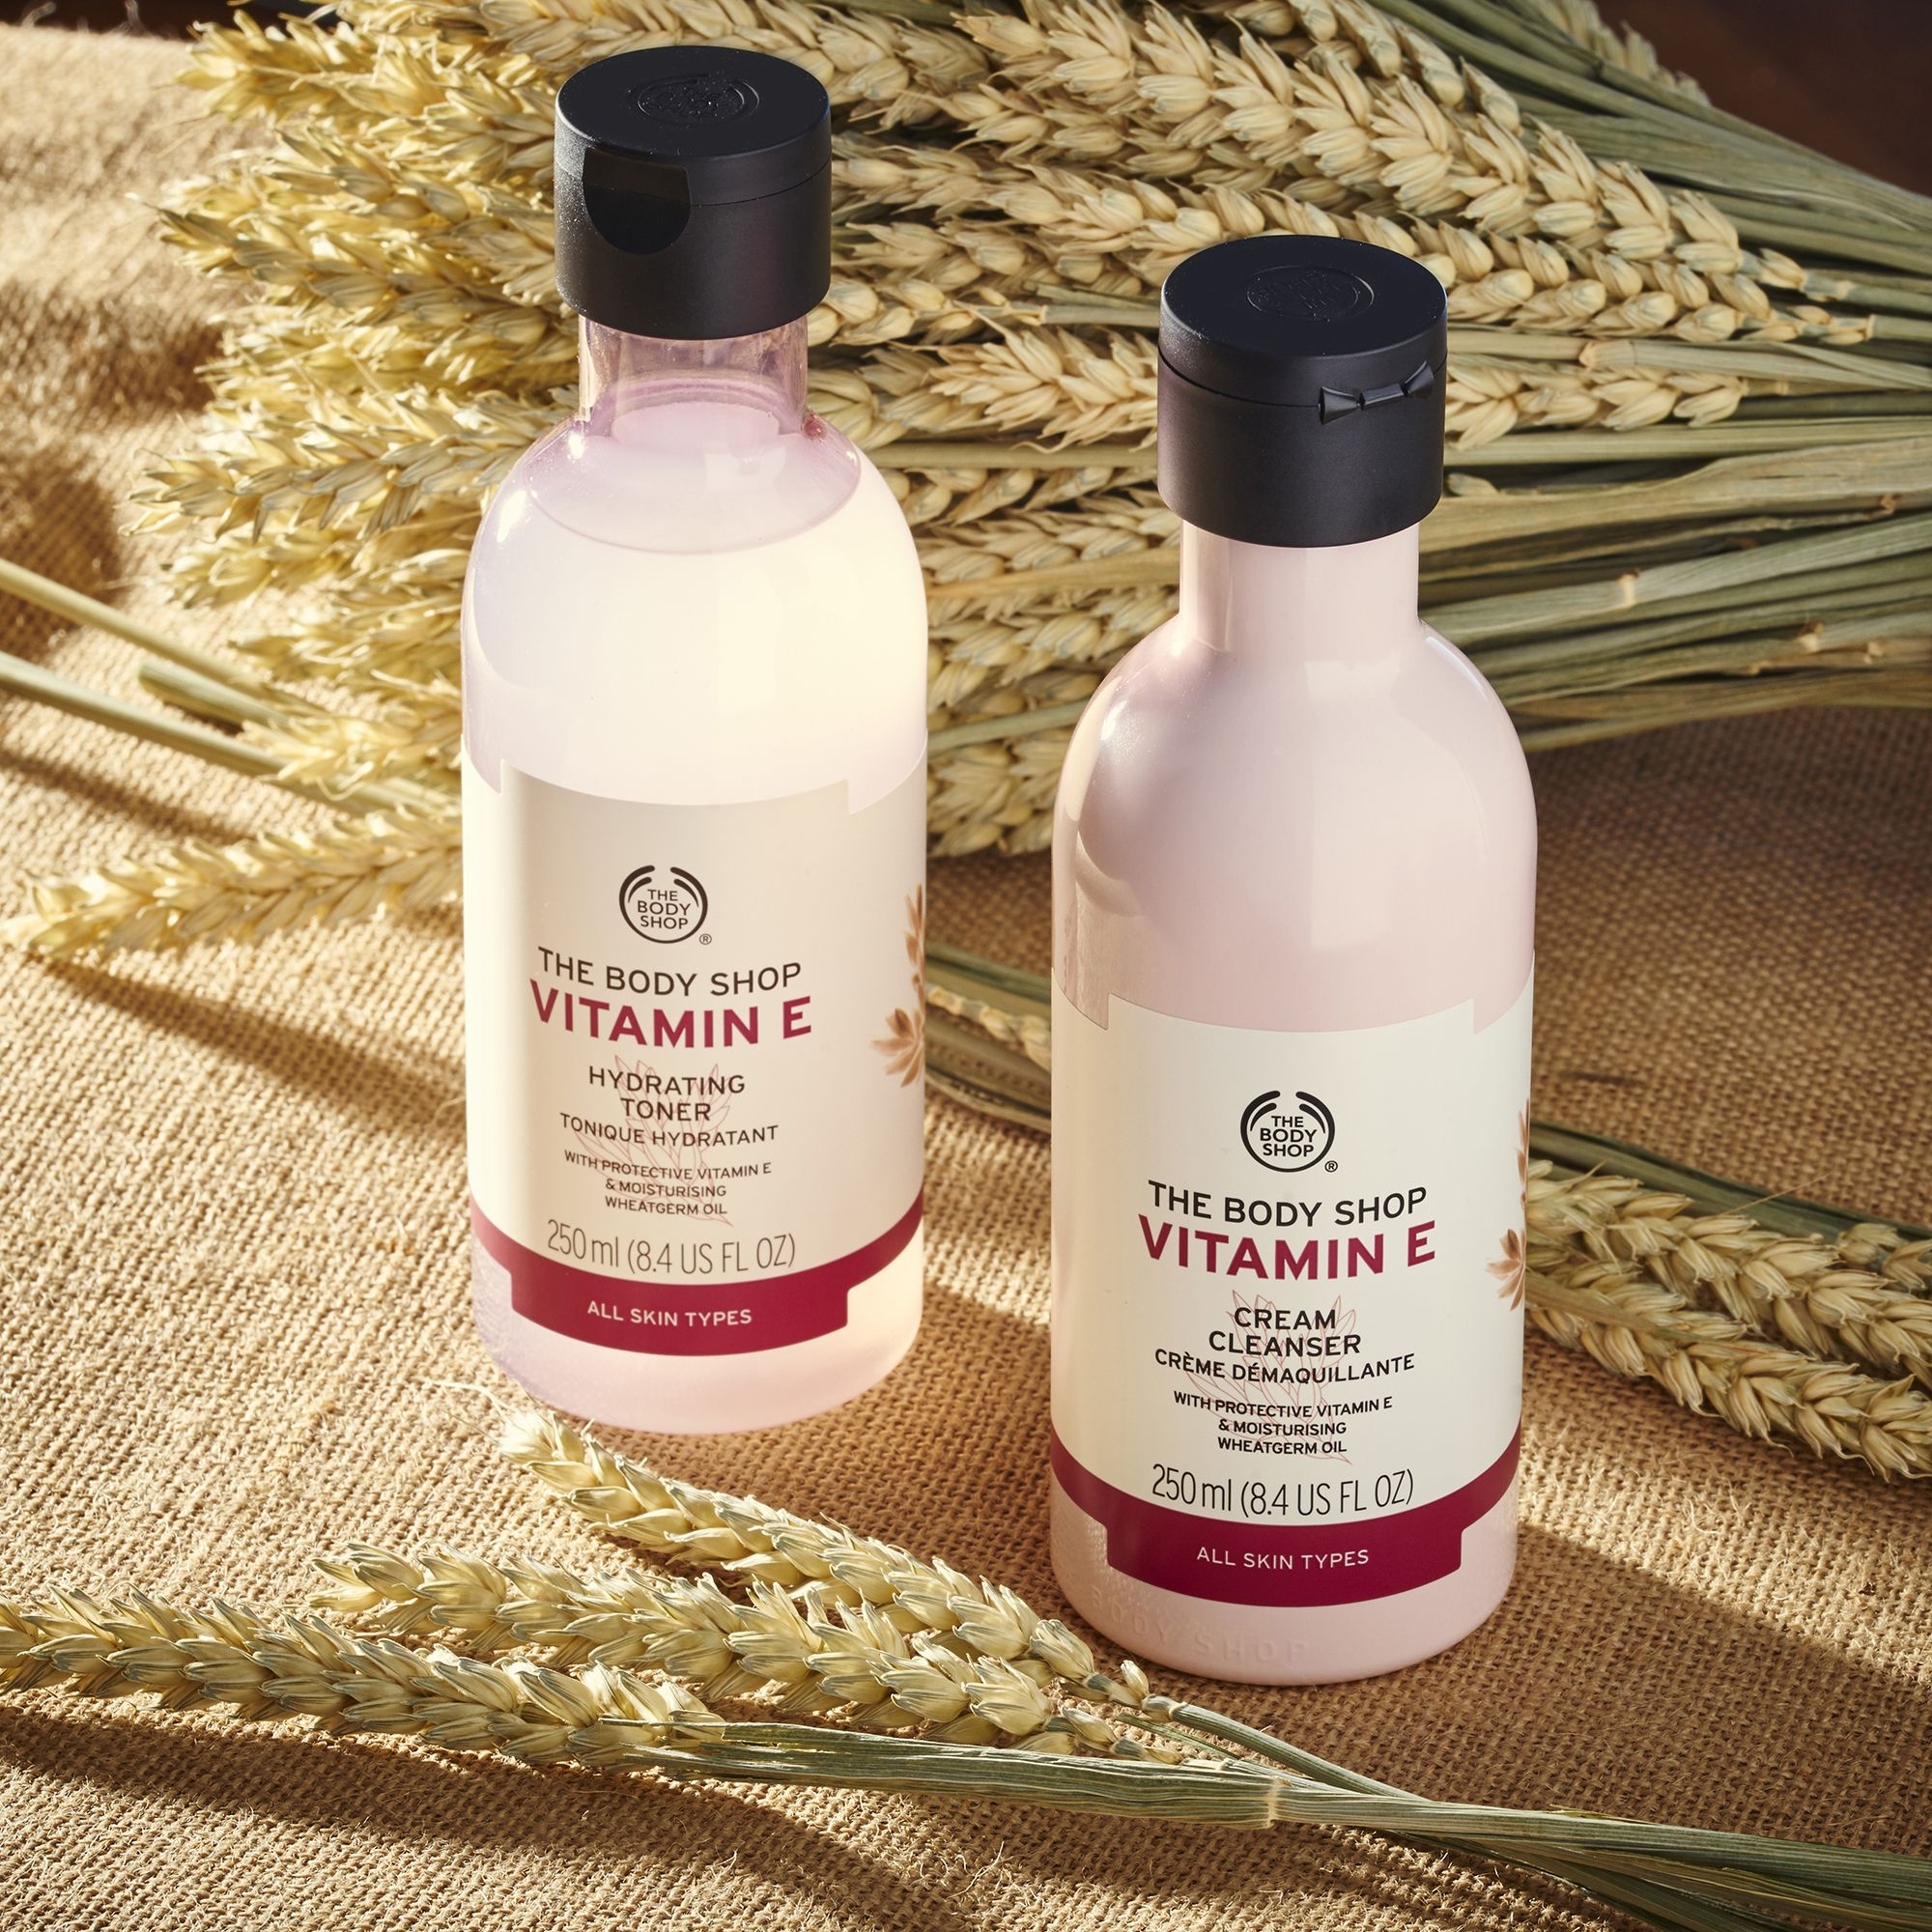 A Light Creamy Cleanser With Protective Vitamin E And Moisturising Wheatgerm Oil That Effectively Removes I Body Shop Skincare The Body Shop Body Shop At Home